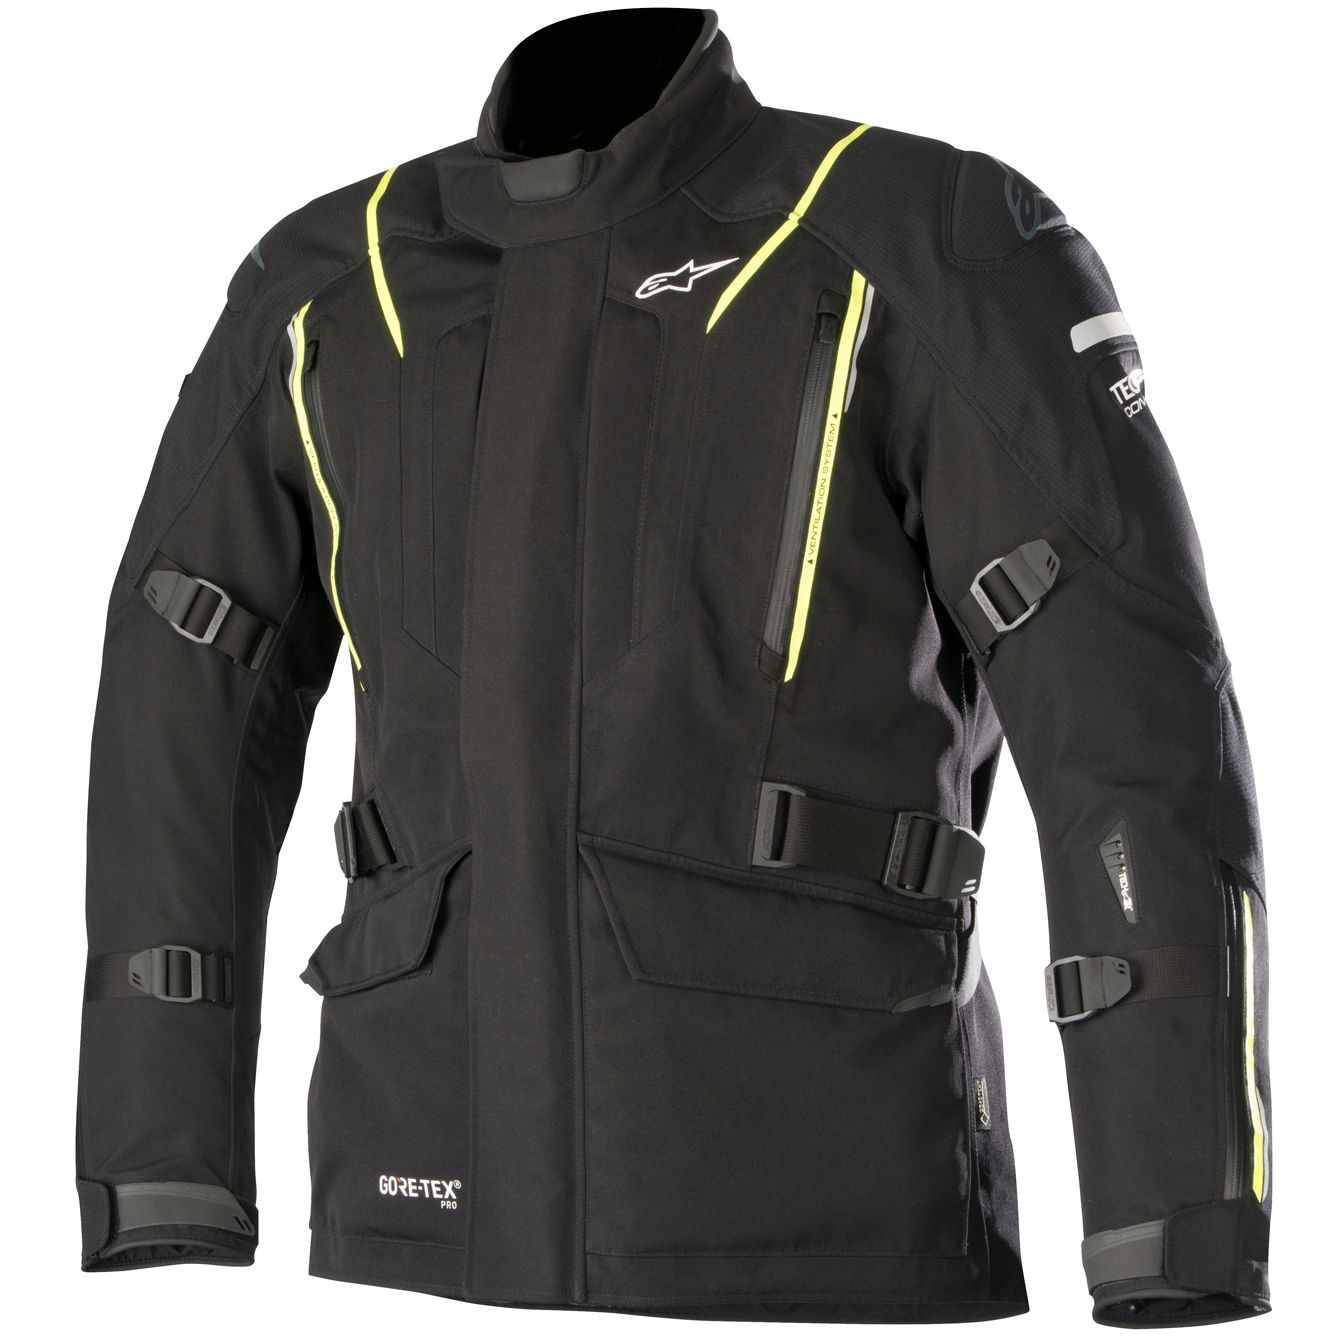 Veste Alpinestars BIG SUR GORETEX PRO compatible TECH-AIR